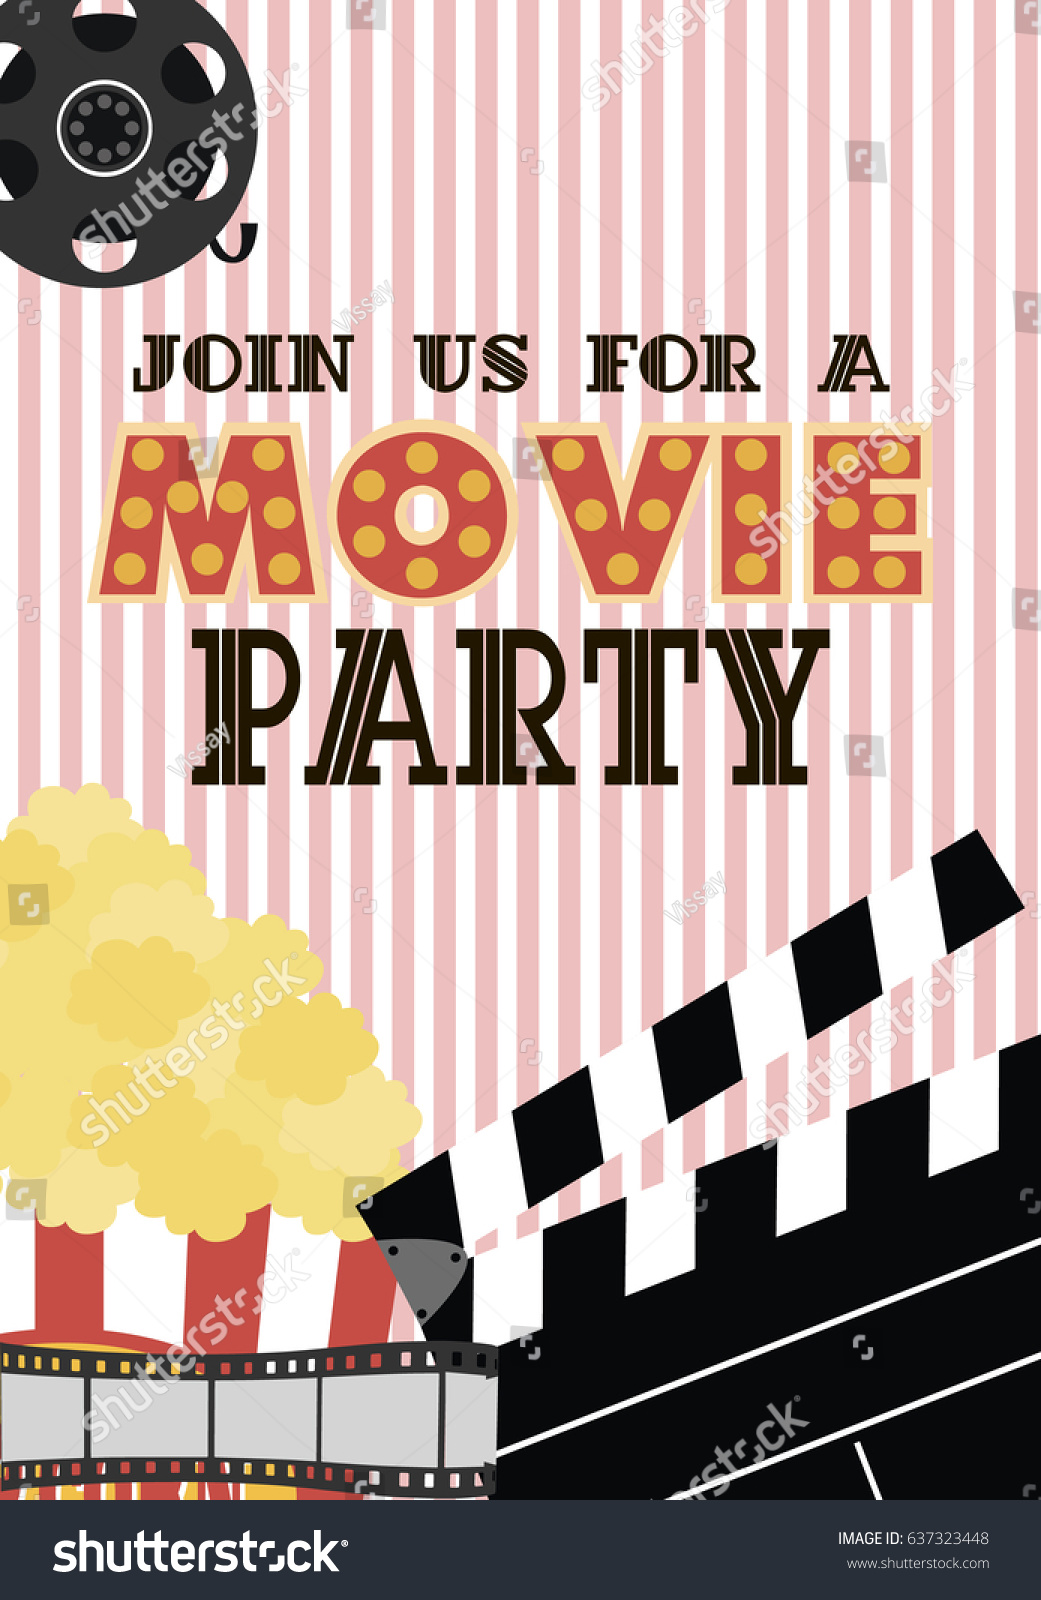 Movie Birthday Party Invitation Card Design Stock Photo (Photo ...